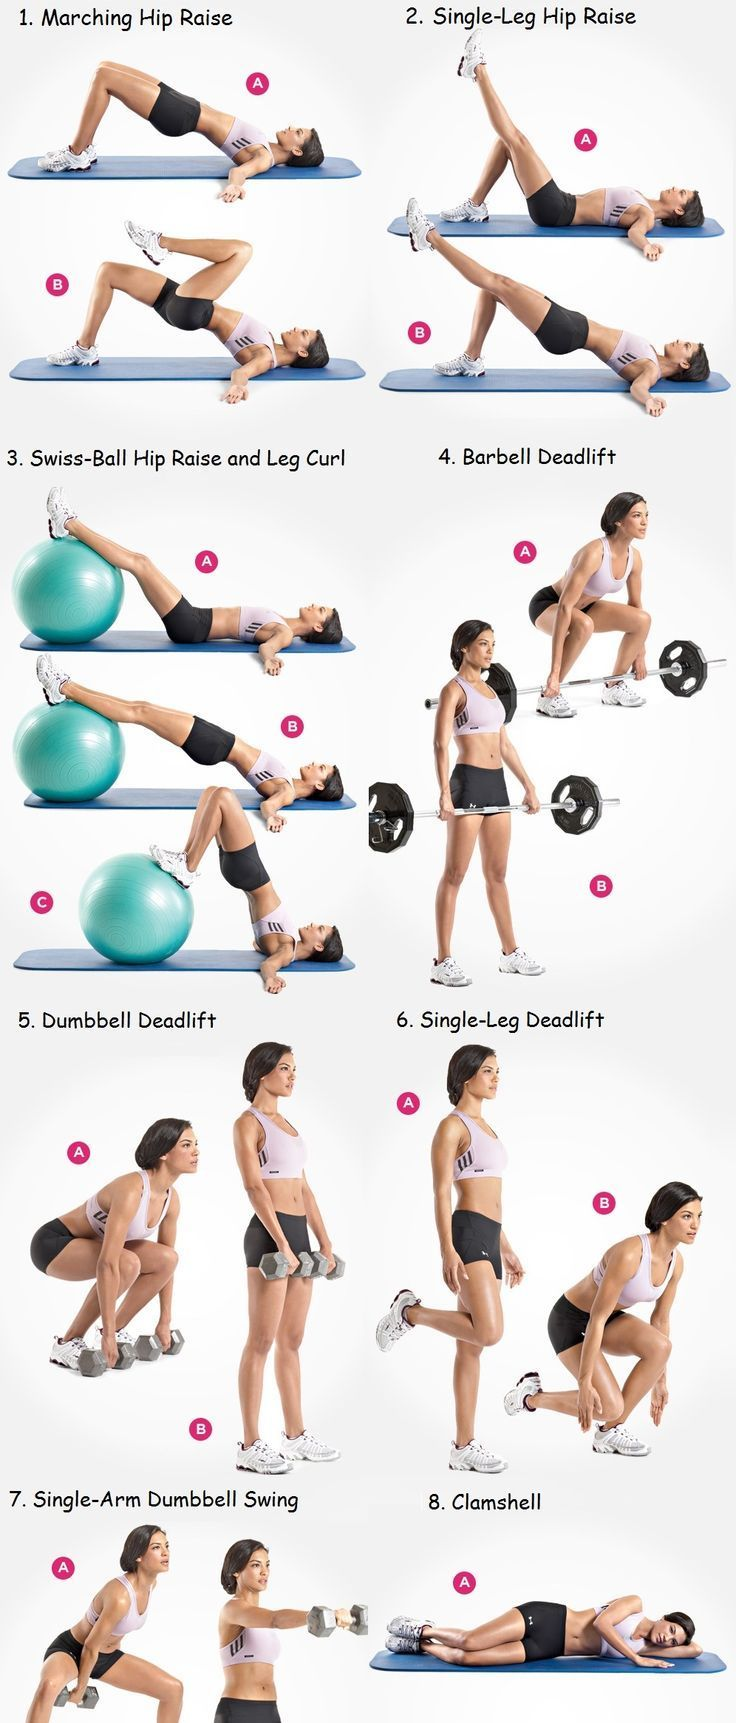 See more here ► https://www.youtube.com/watch?v=__Gi8cvdquw Tags: liquid diets for quick weight loss, the quick weight loss diet, quick weight loss florida - B4tea: Exercises to fast reduce hips and thighs in women